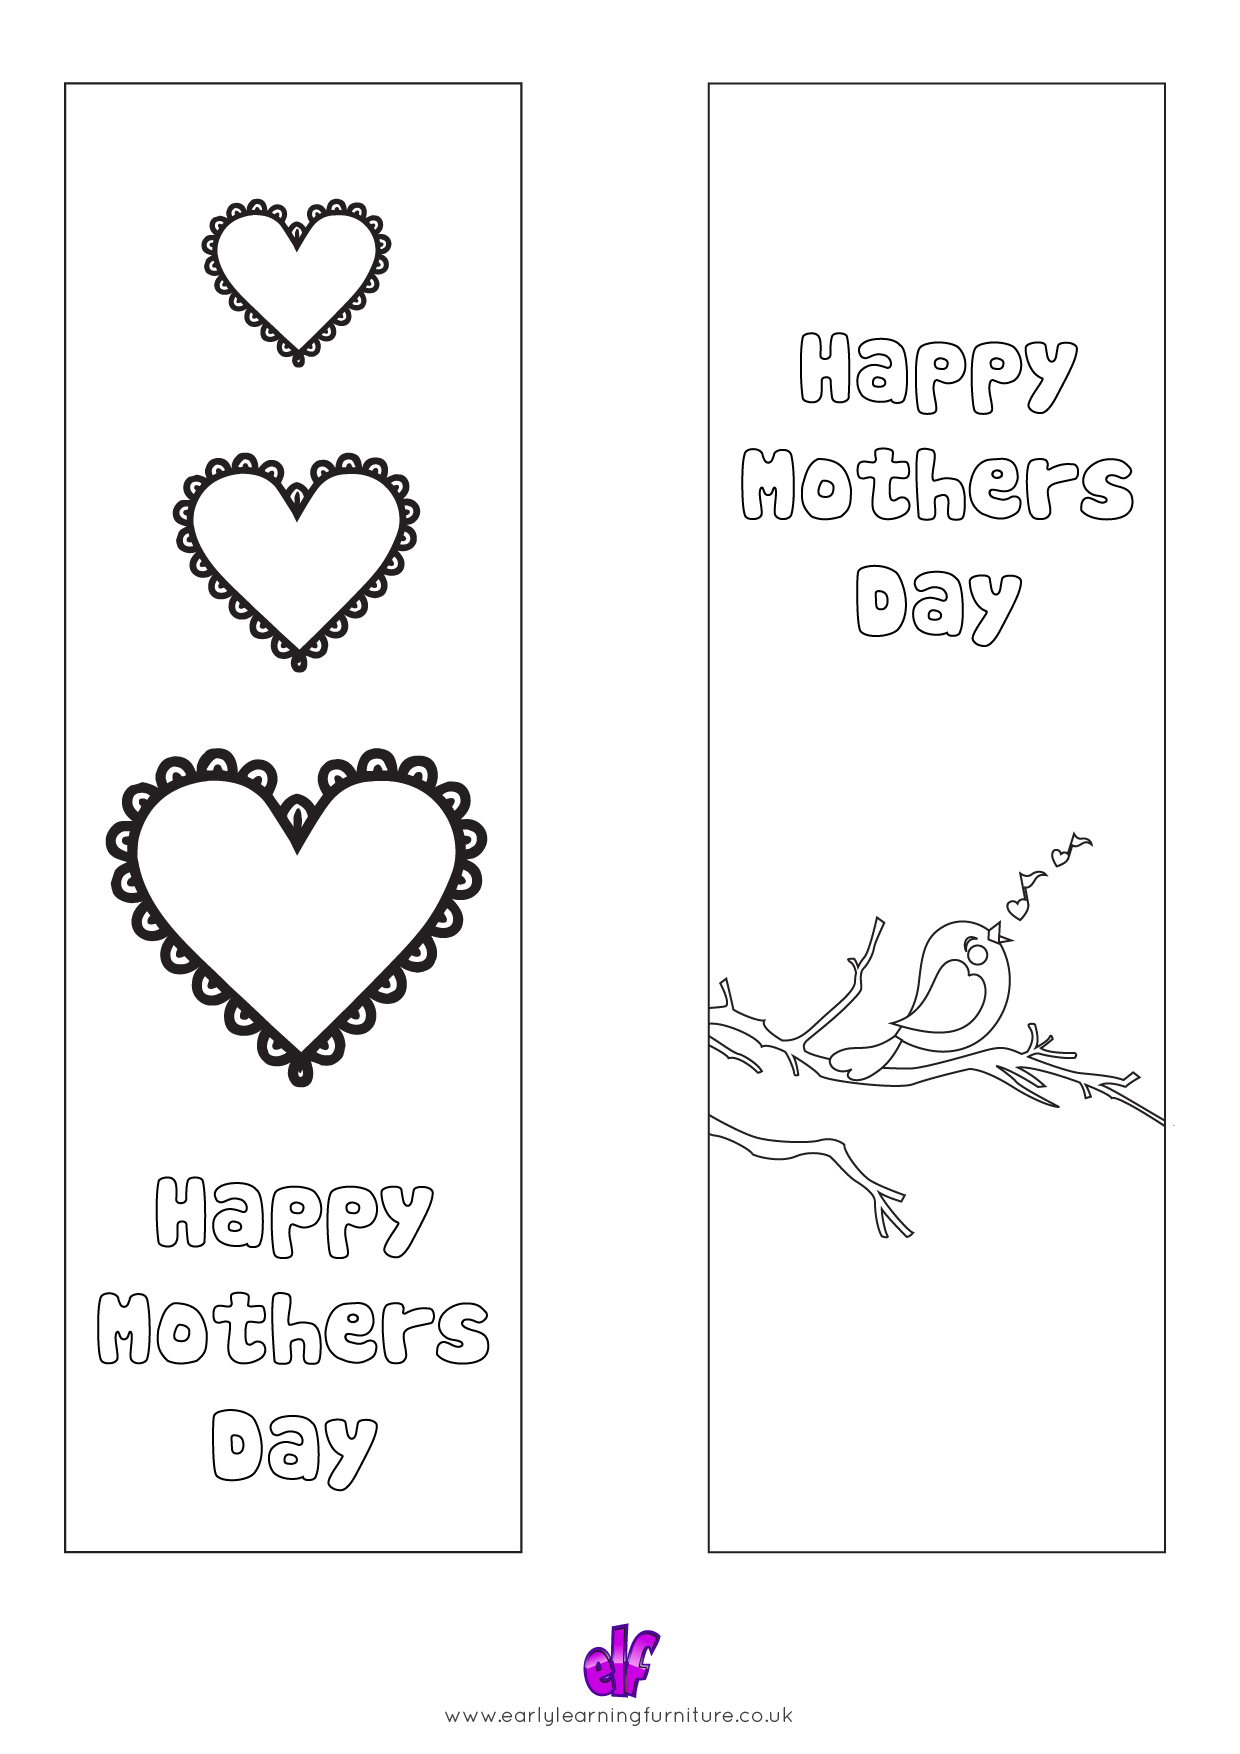 Free Teaching Resources Mothers Day- Happy Mothers Day Colour In Bookmarks 2